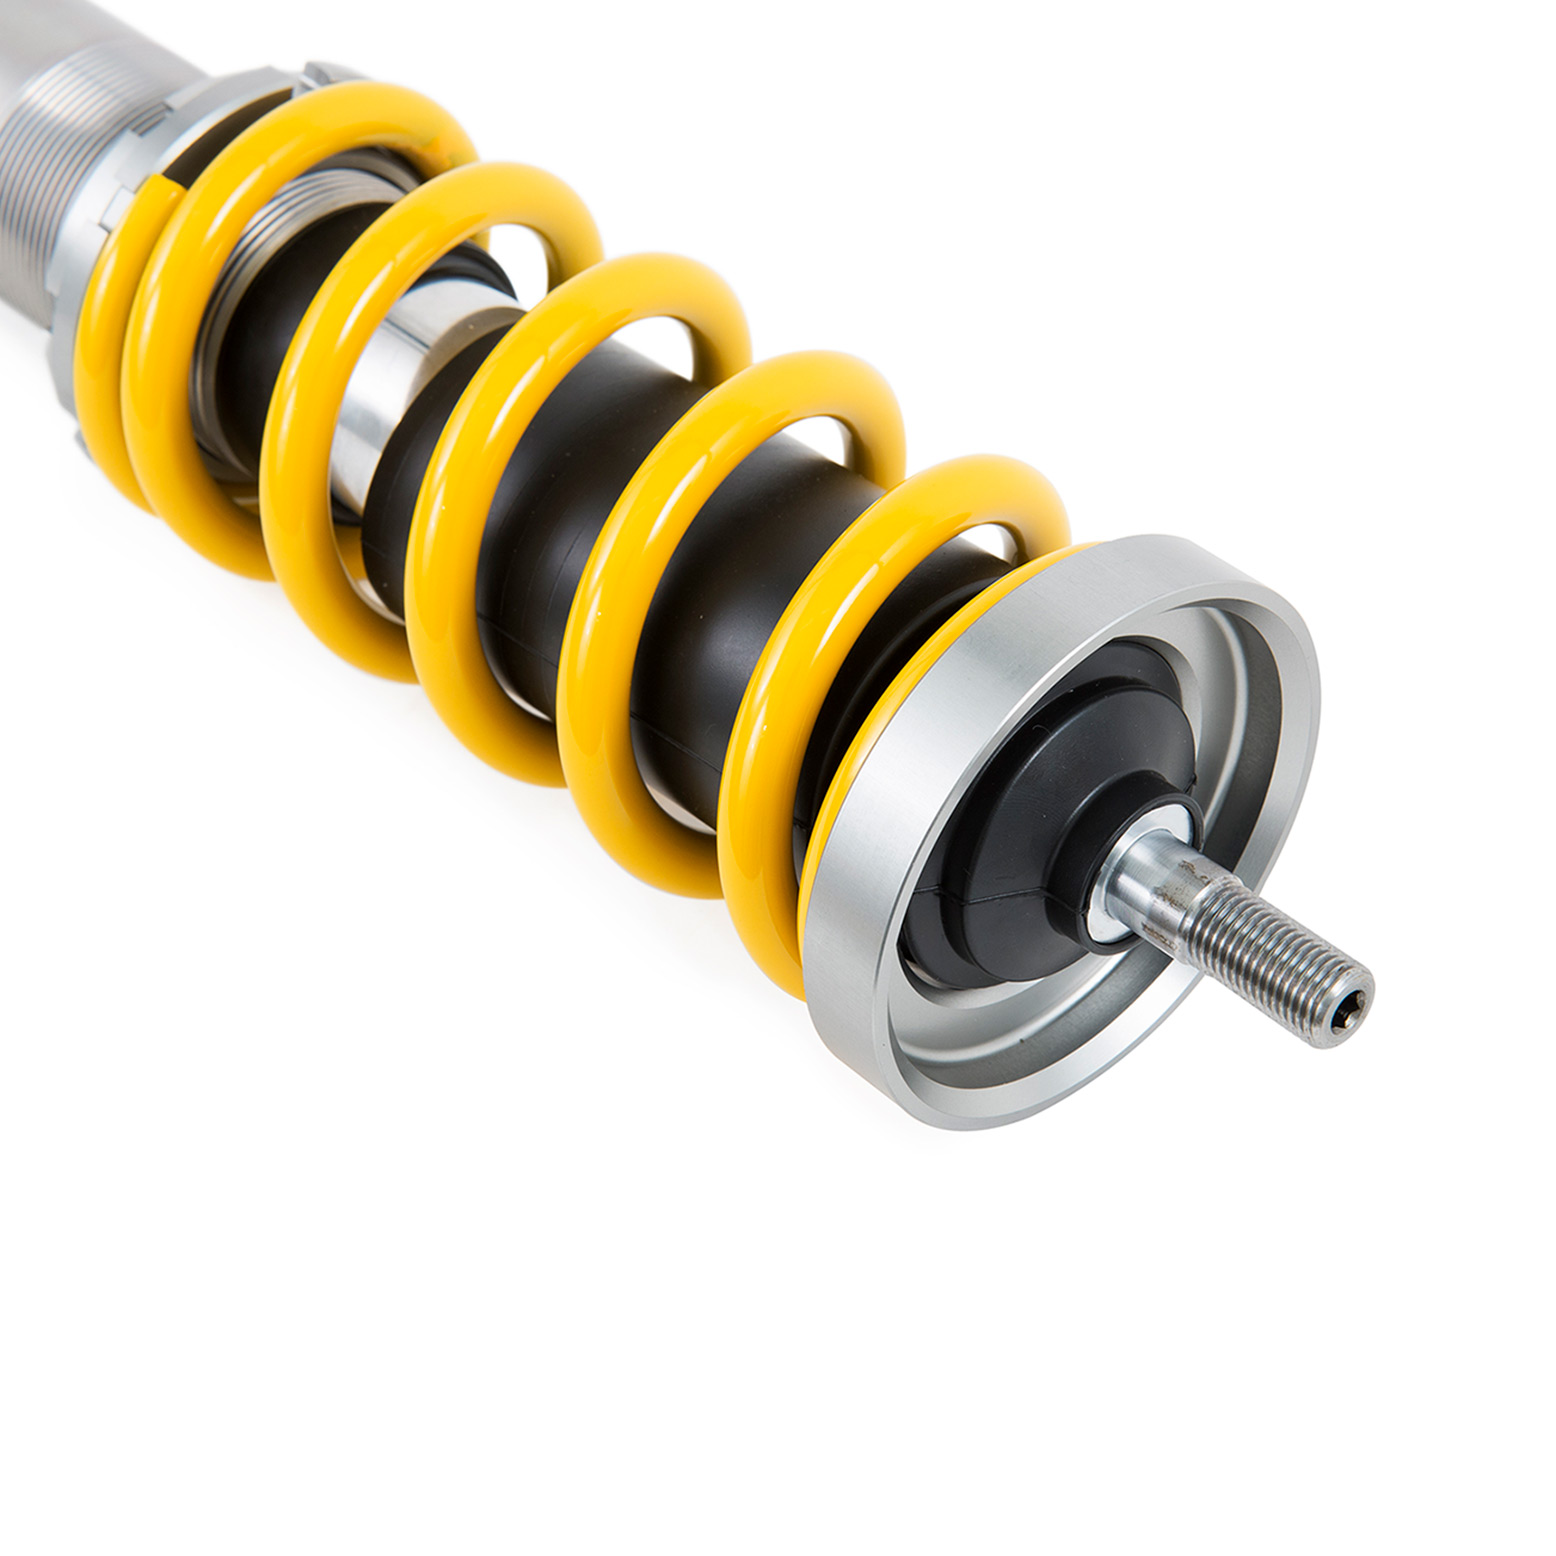 Volkswagen Ohlins Road and Track Coilovers GTI 2010-2014